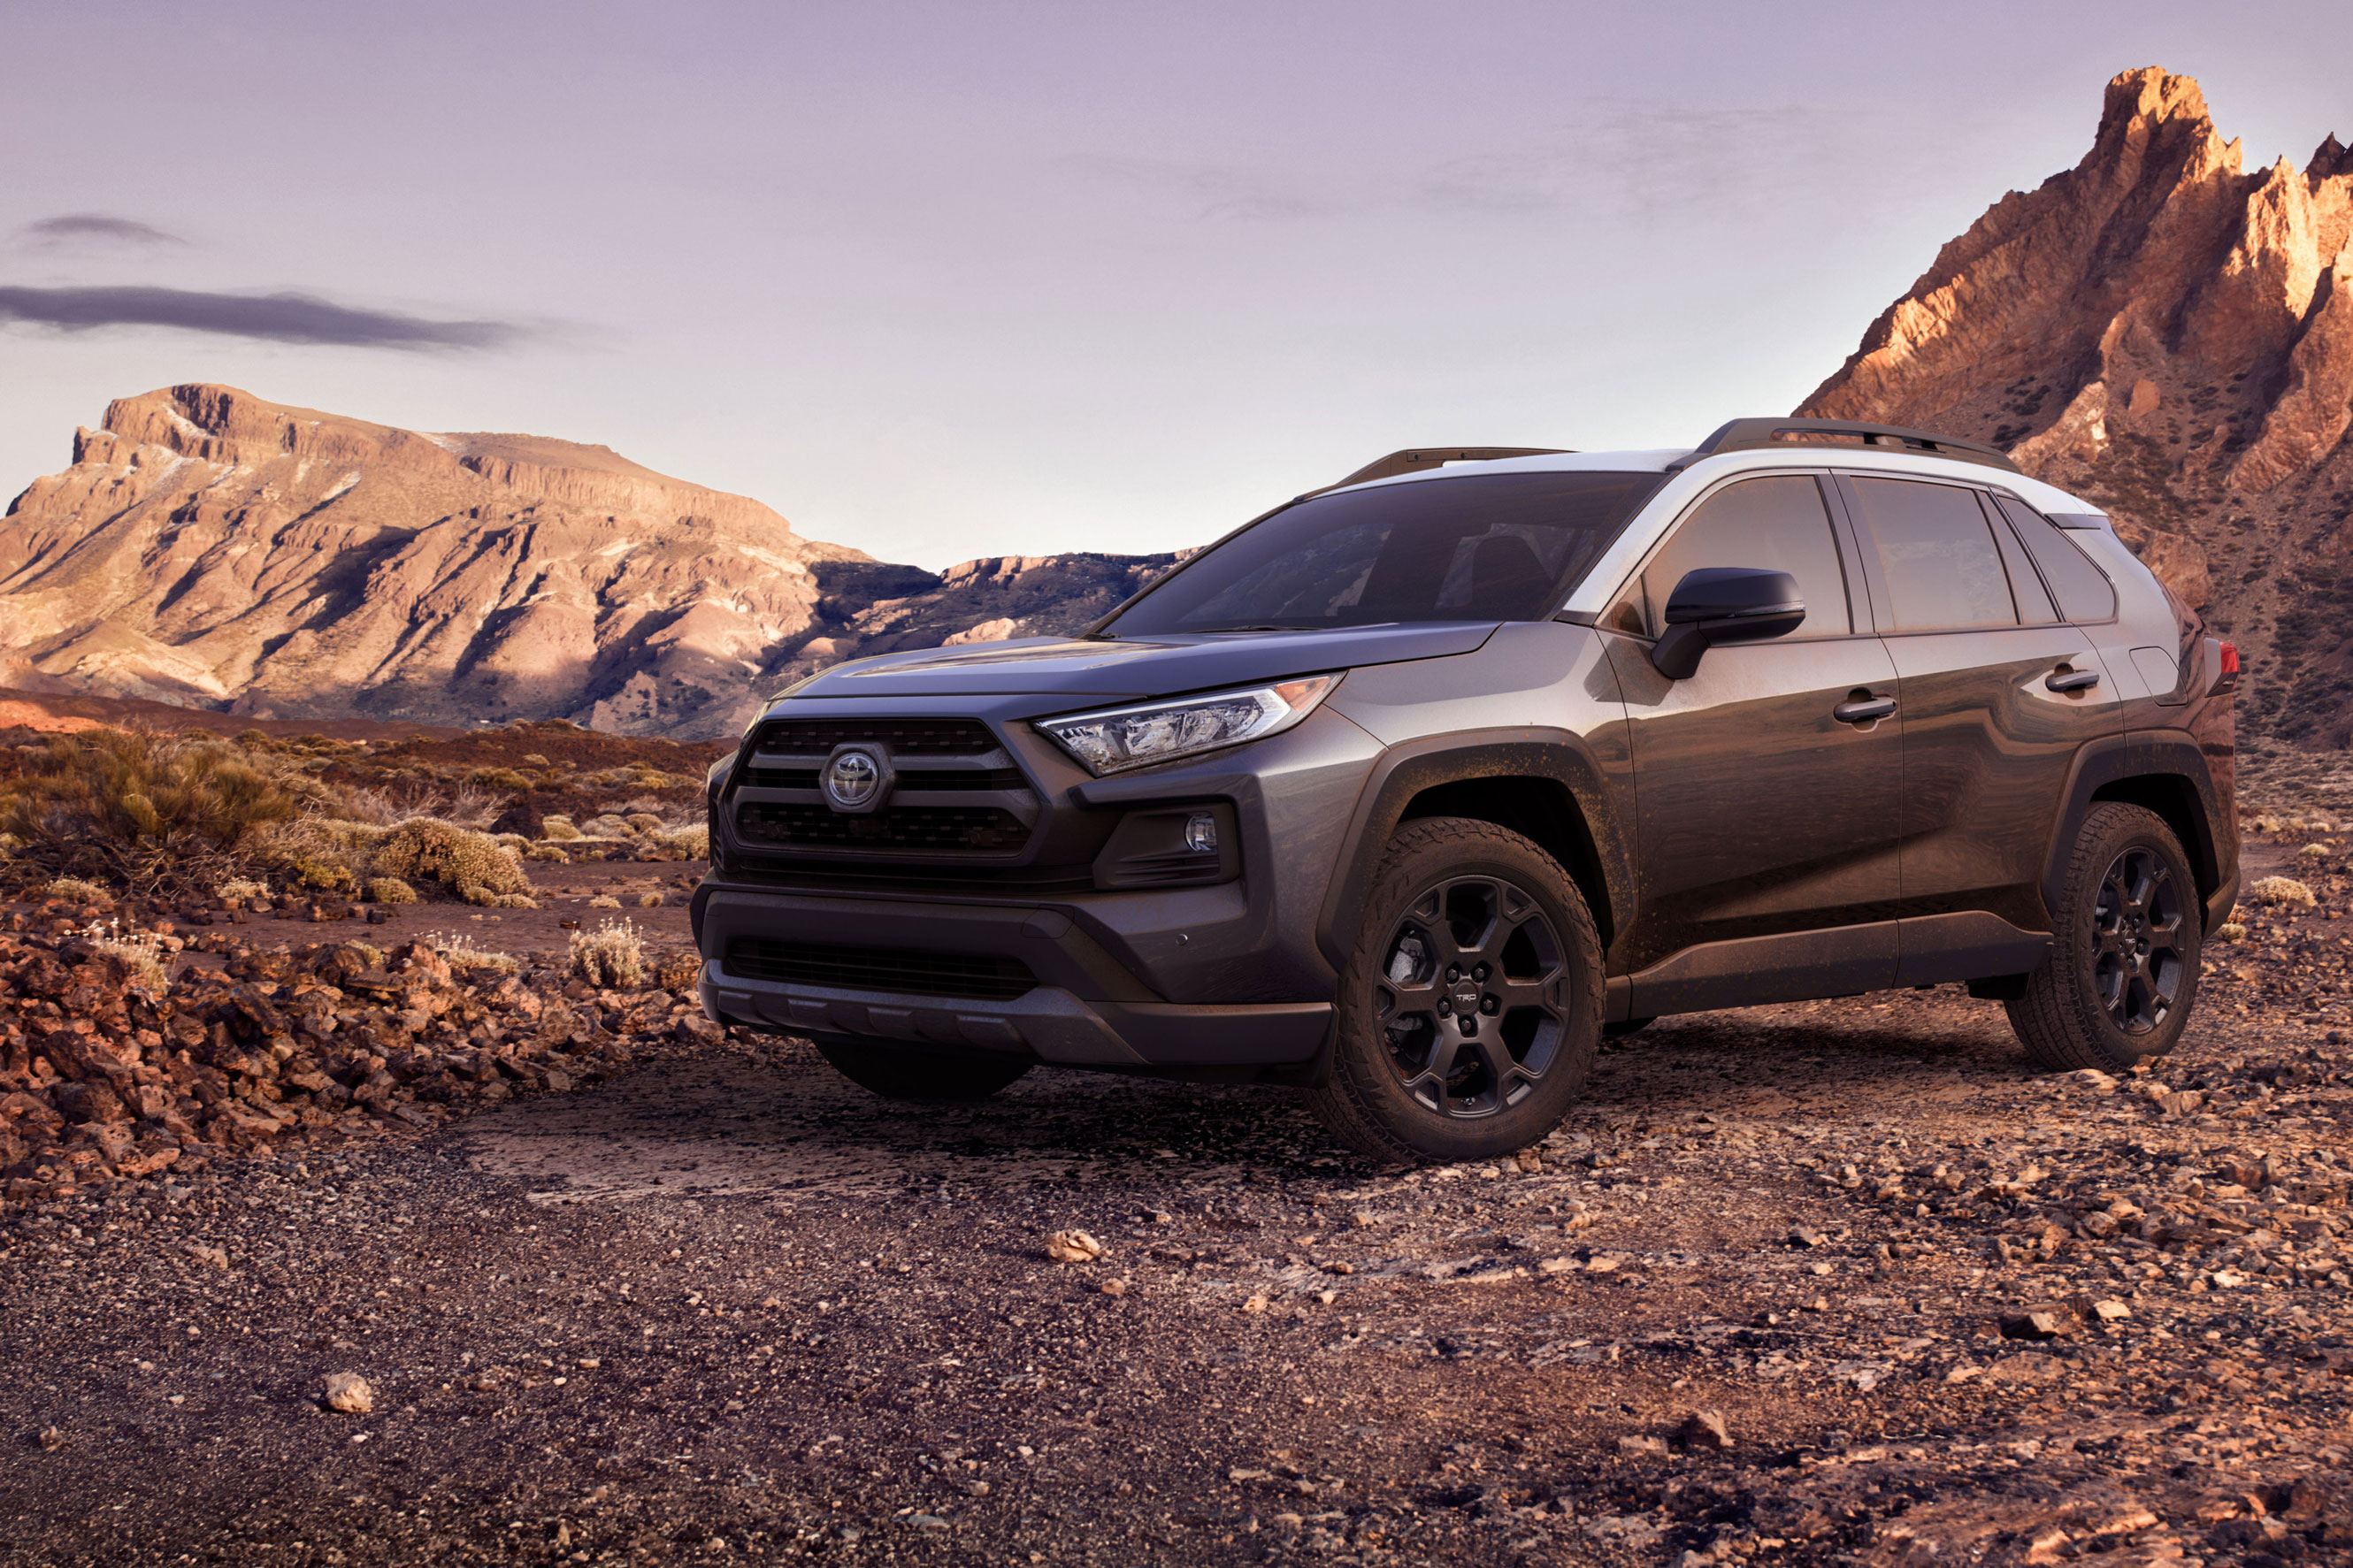 2020 Rav4 Trd Off Road Toyota Slaps An Off Road Badge On Its Little Suv Gearjunkie